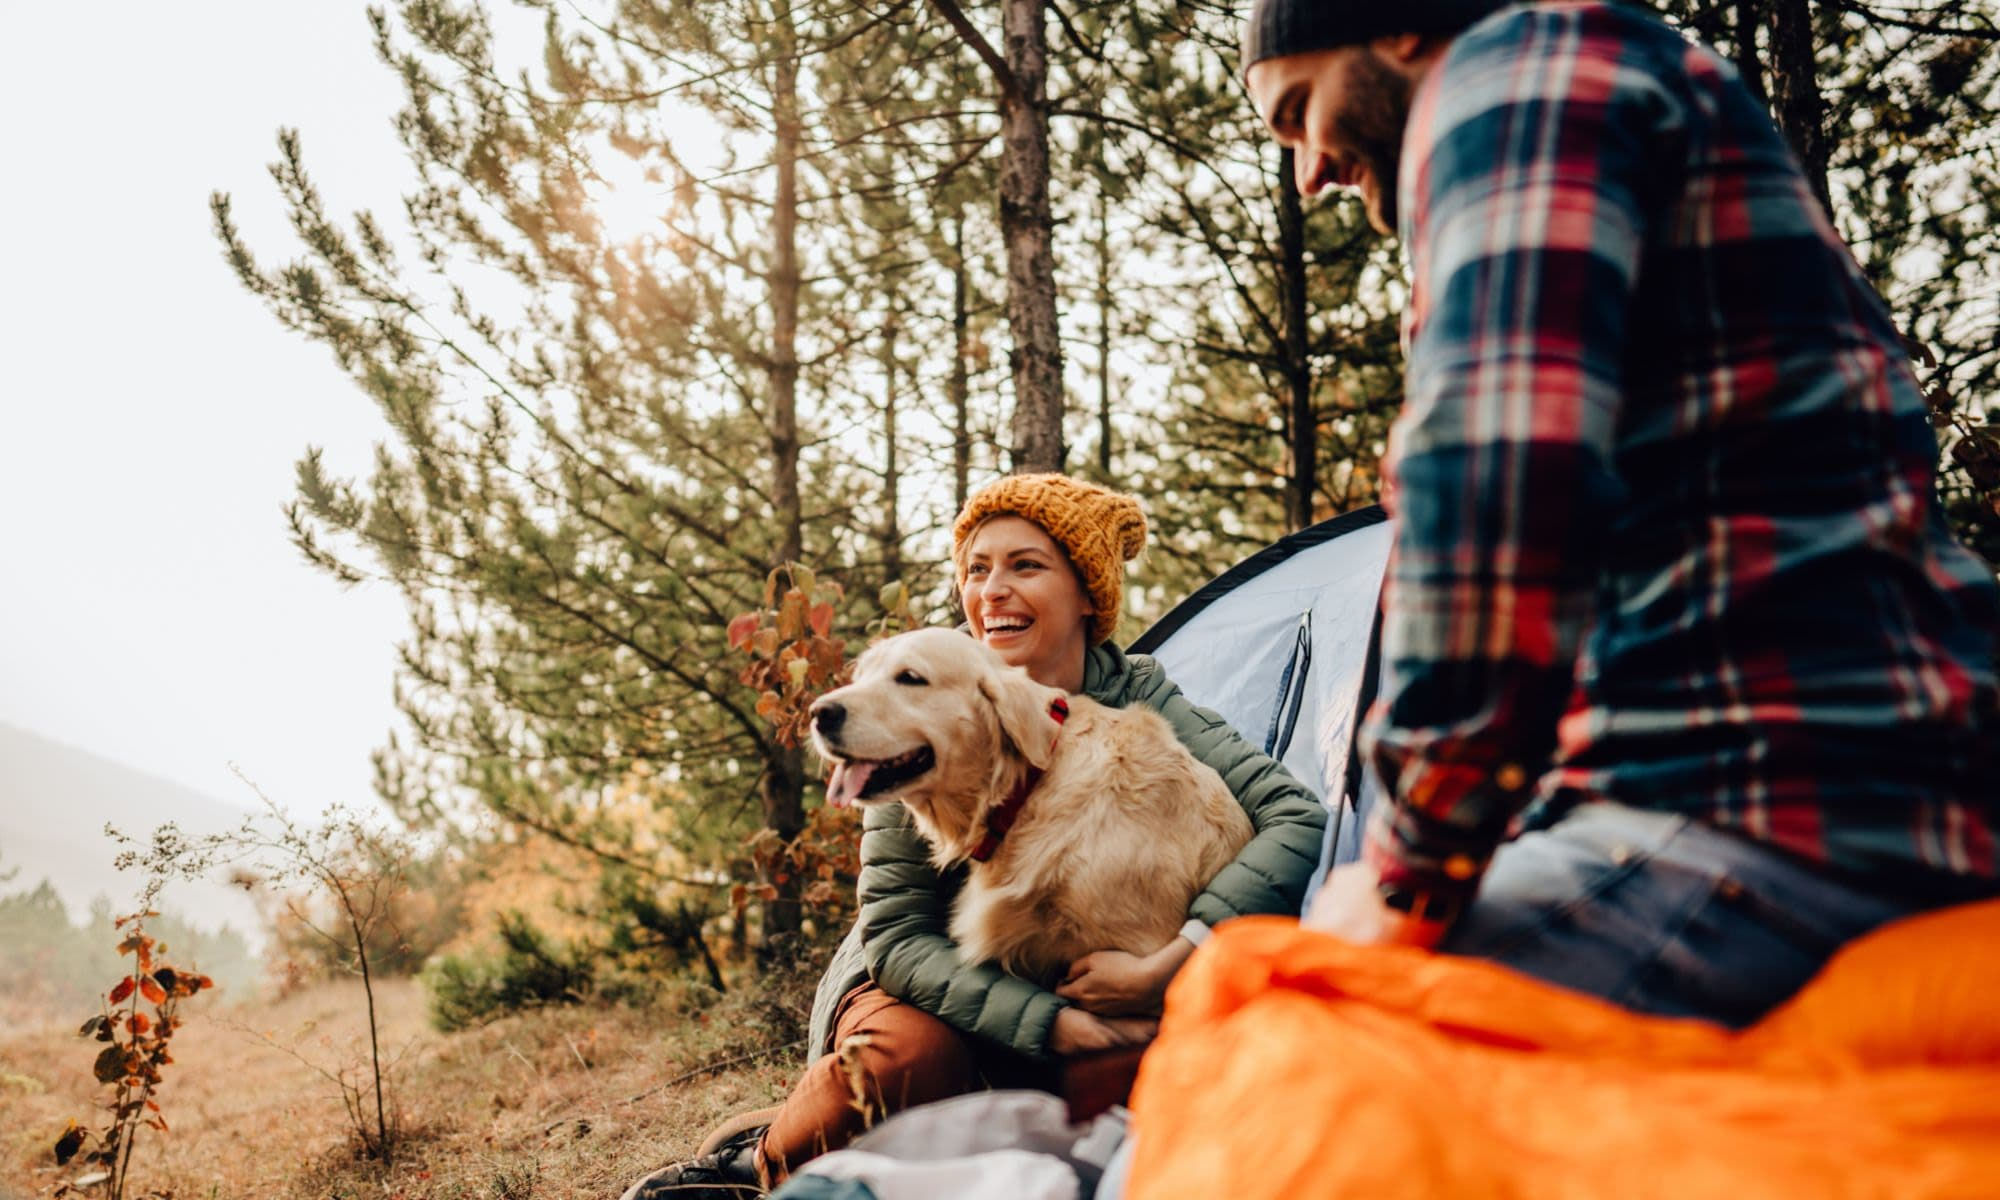 Friends on a camping trip with their cute puppy dog near Liberty SKY in Salt Lake City, Utah